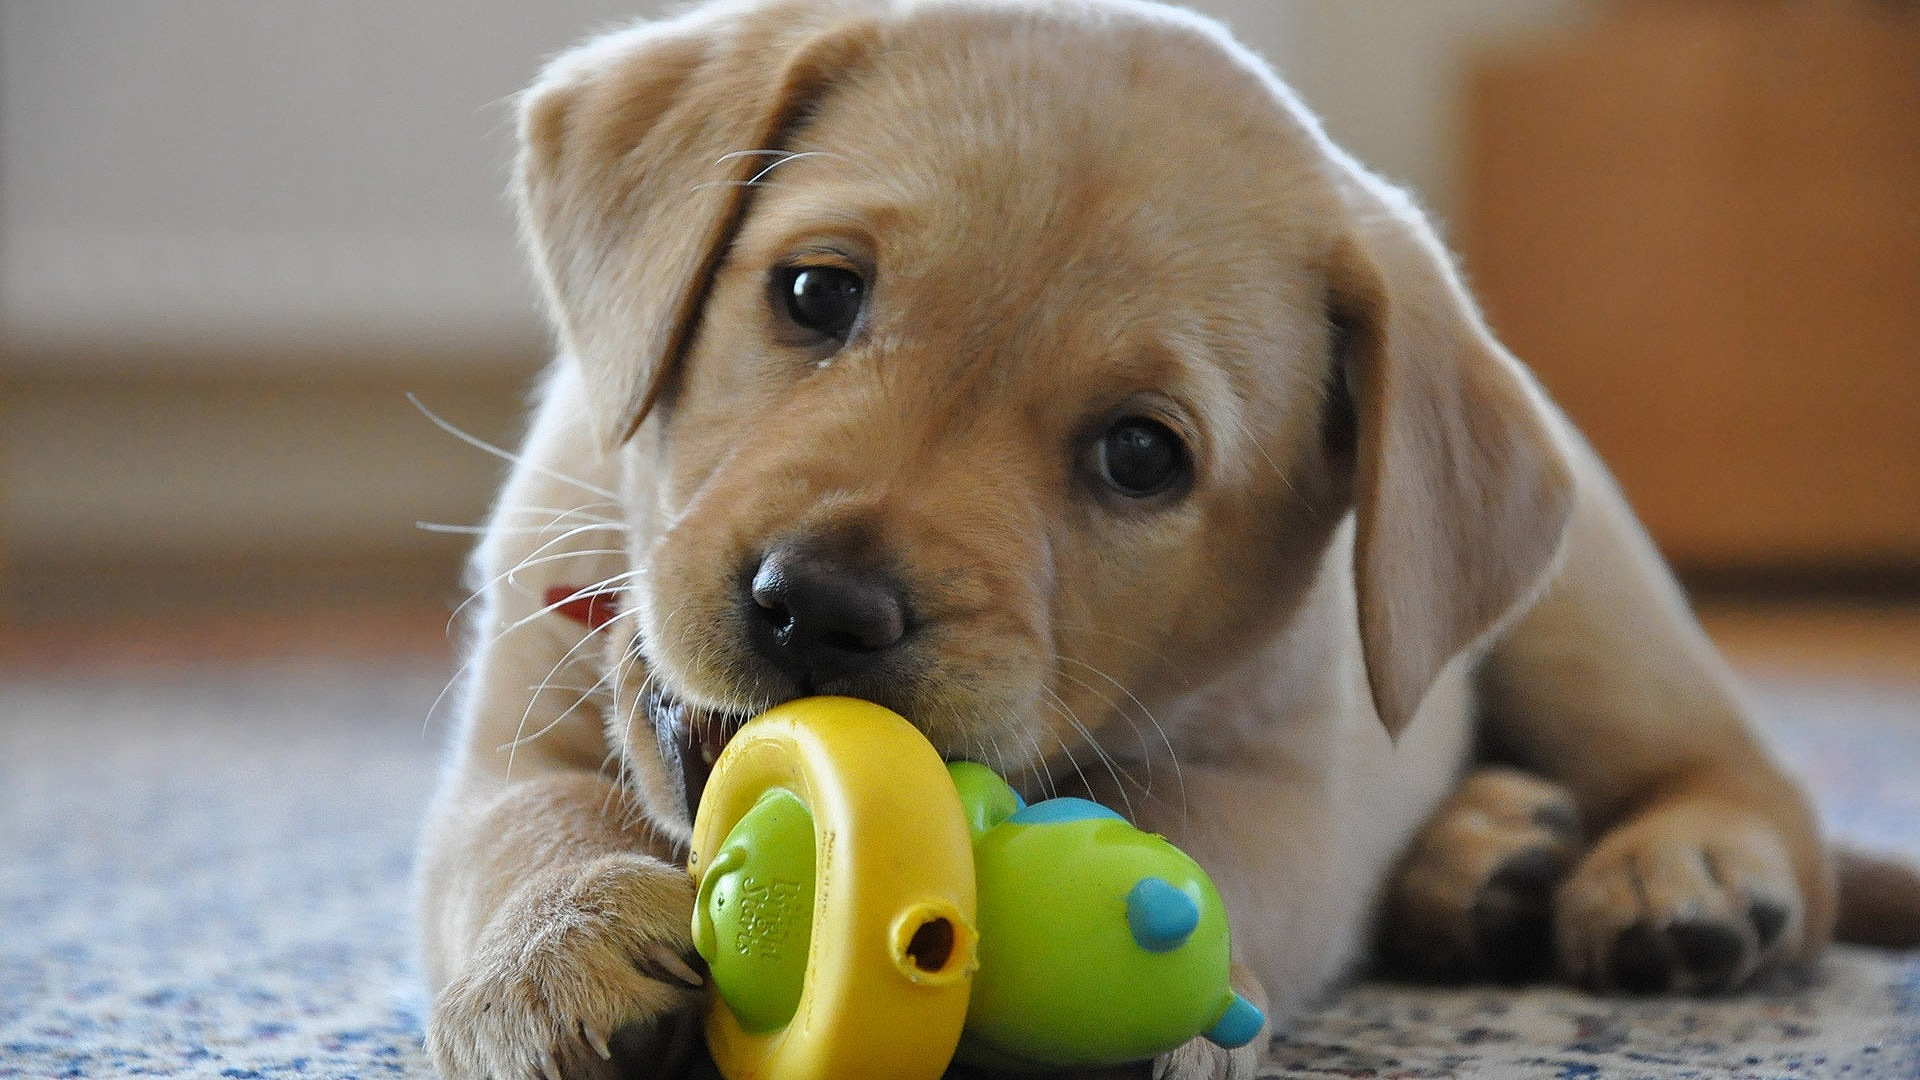 Labrador Puppy Posted By John Anderson